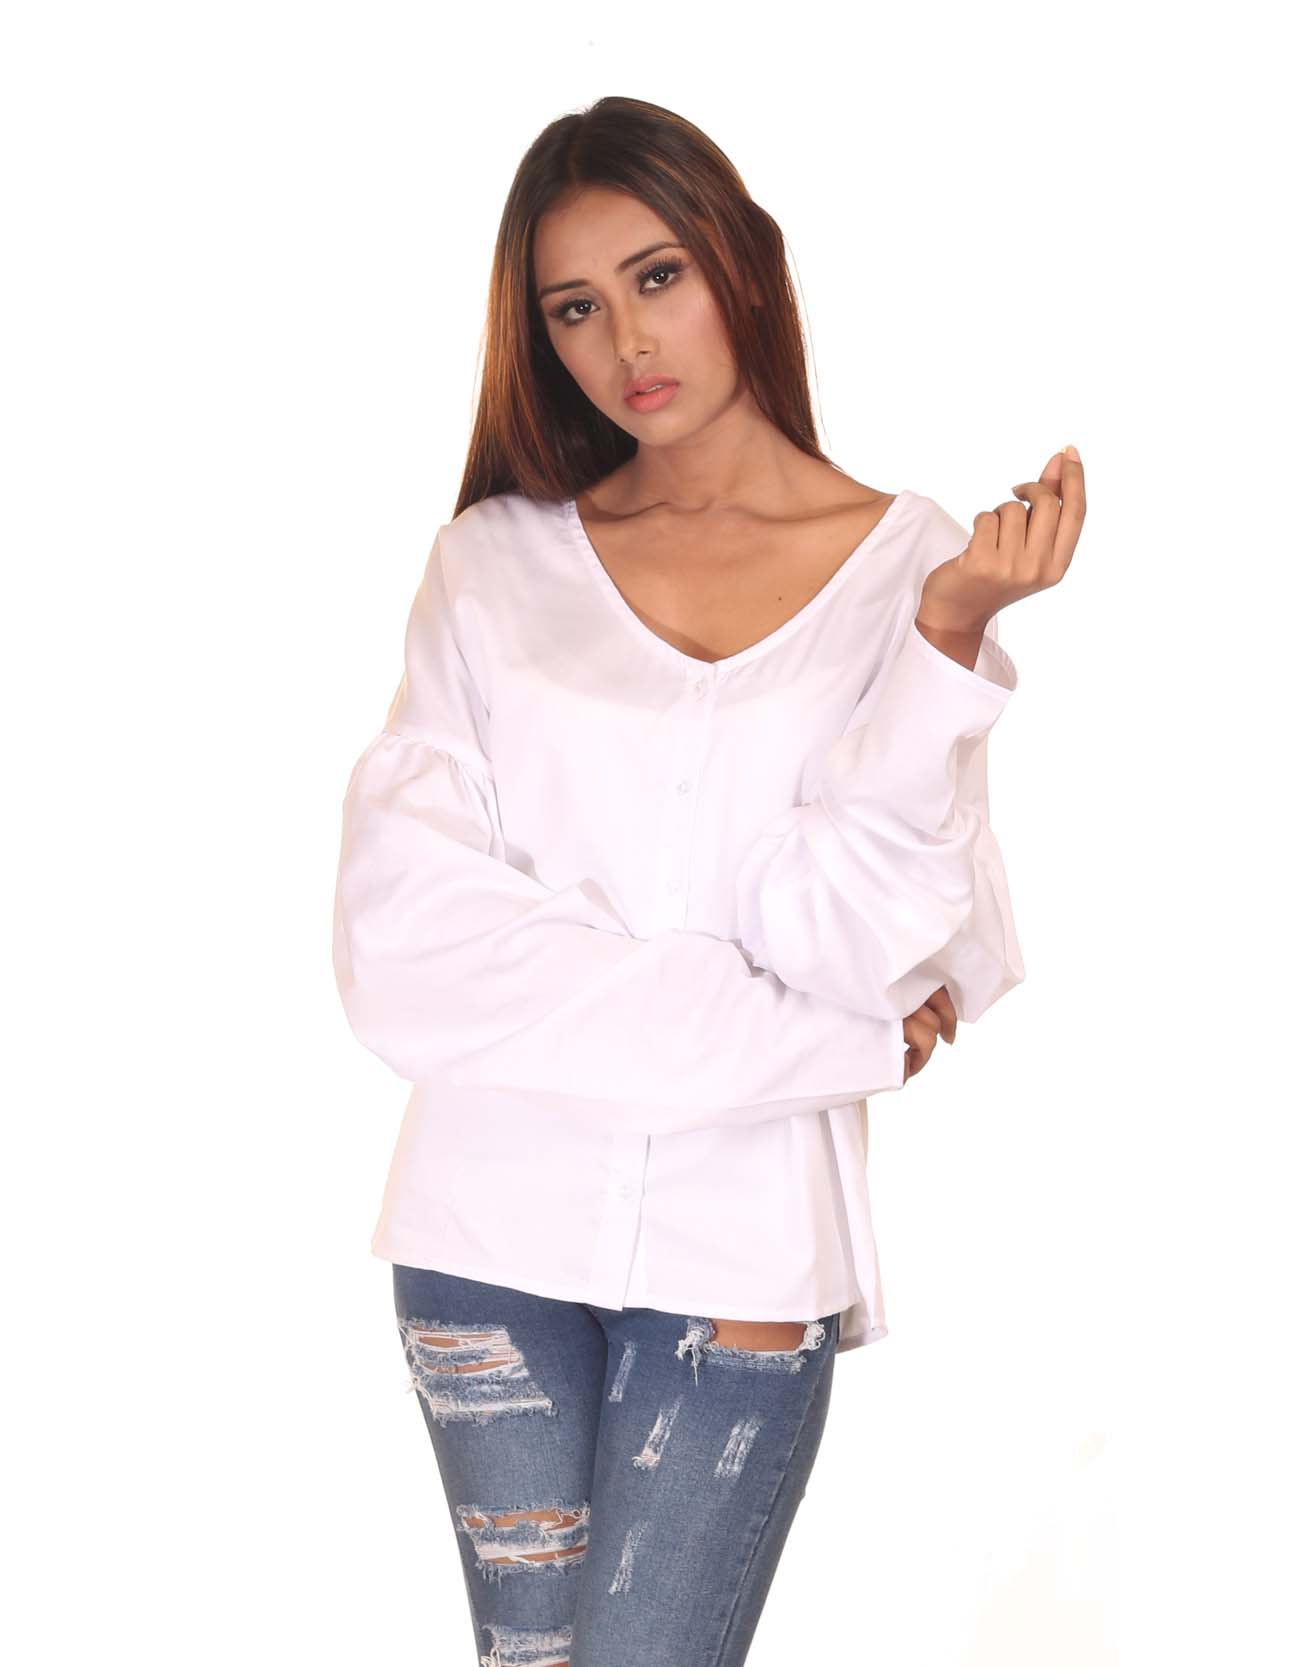 Statement Sleeved Buttoned Top